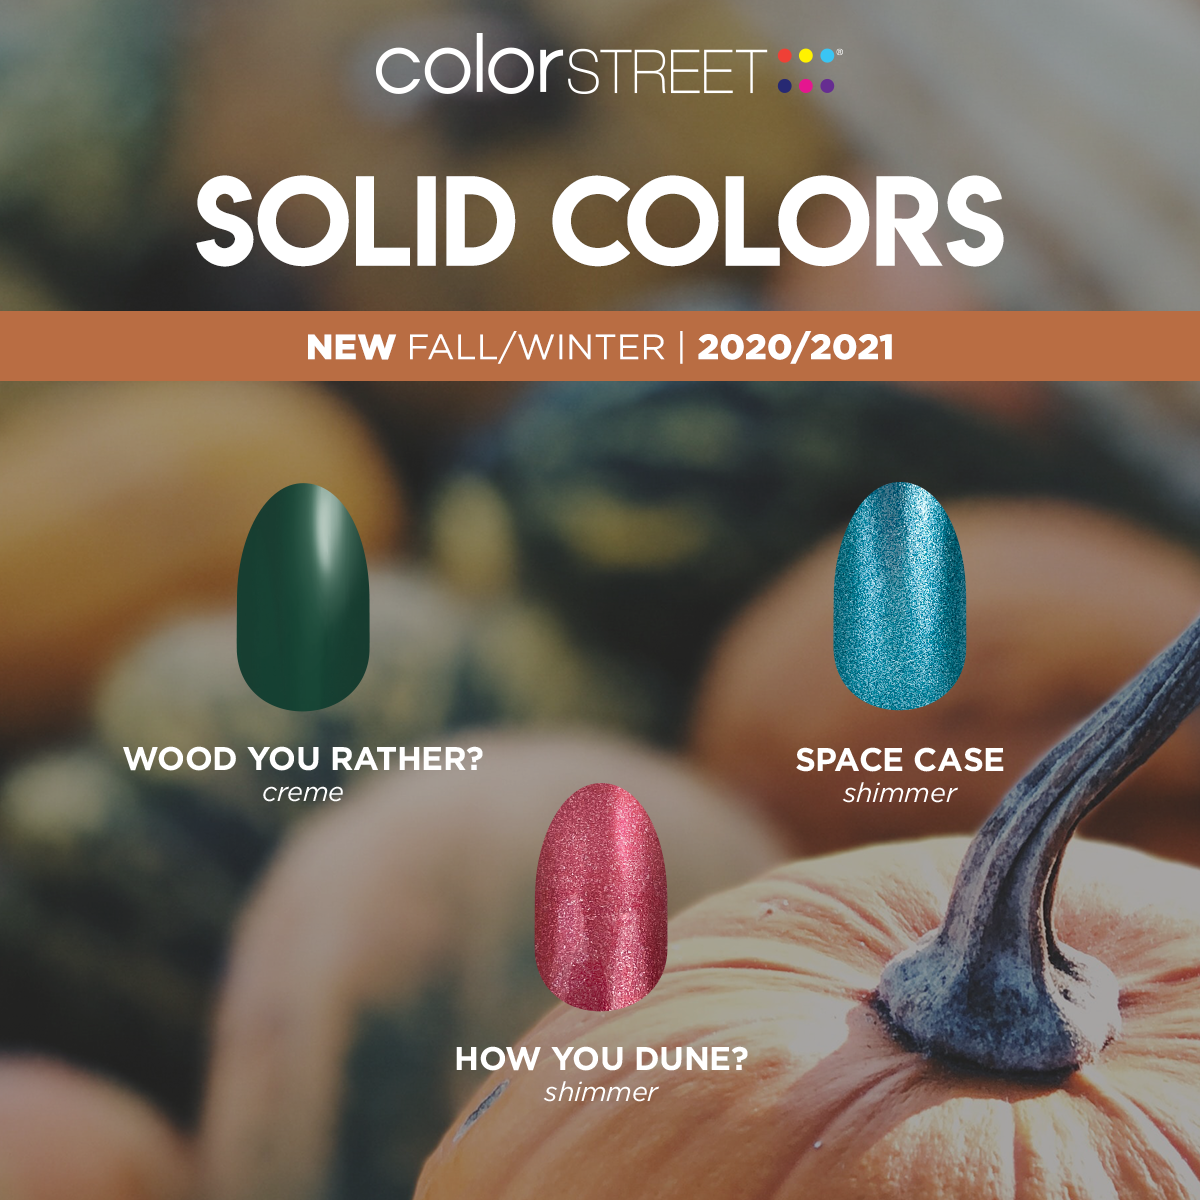 Color Street's Fall/Winter 2020 Solid Colors